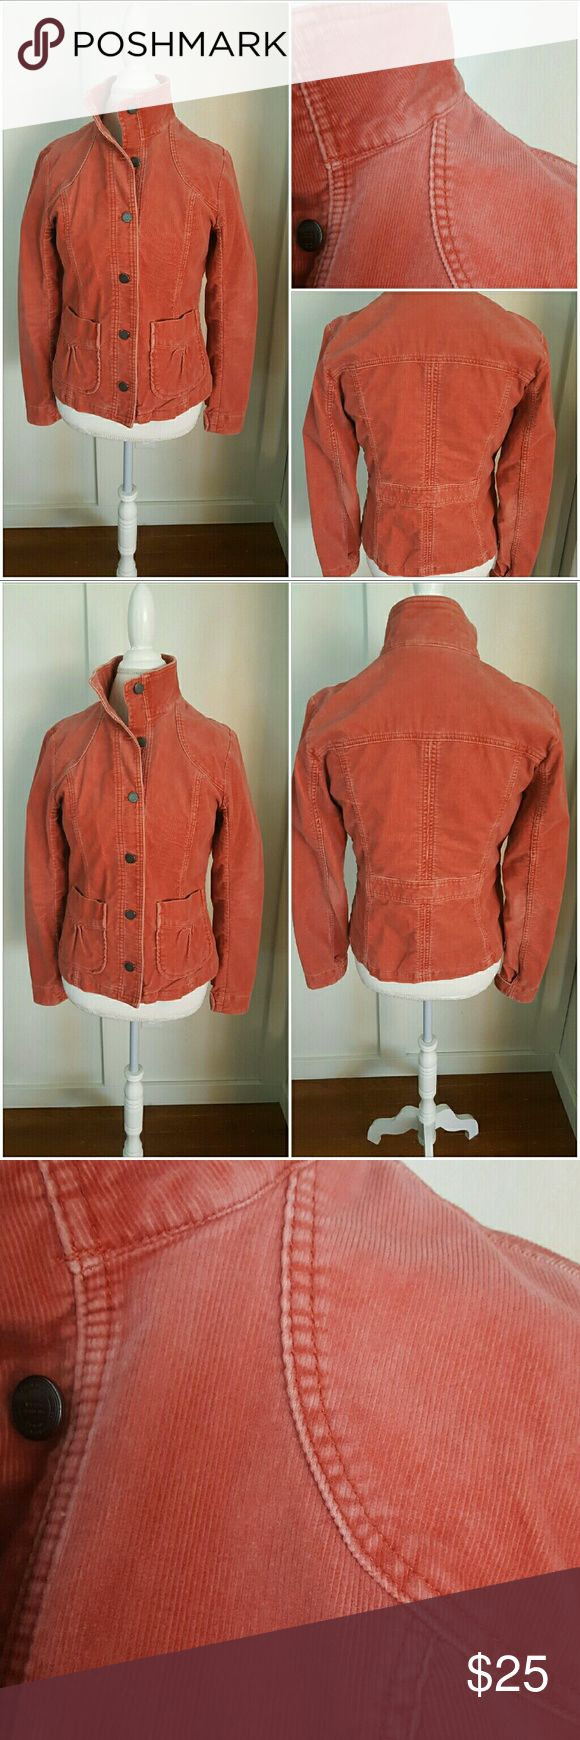 Eddie Bauer Medium Faded Red Coduroy Jacket Eddie Bauer medium faded red jacket. Faded as part of the design - specially dyed. Coduroy. Long sleeves. Button down. Two front pockets. Pre-owned and in good condition. 83% Cotton 16% Polyester 1% Spandex Eddie Bauer Jackets & Coats